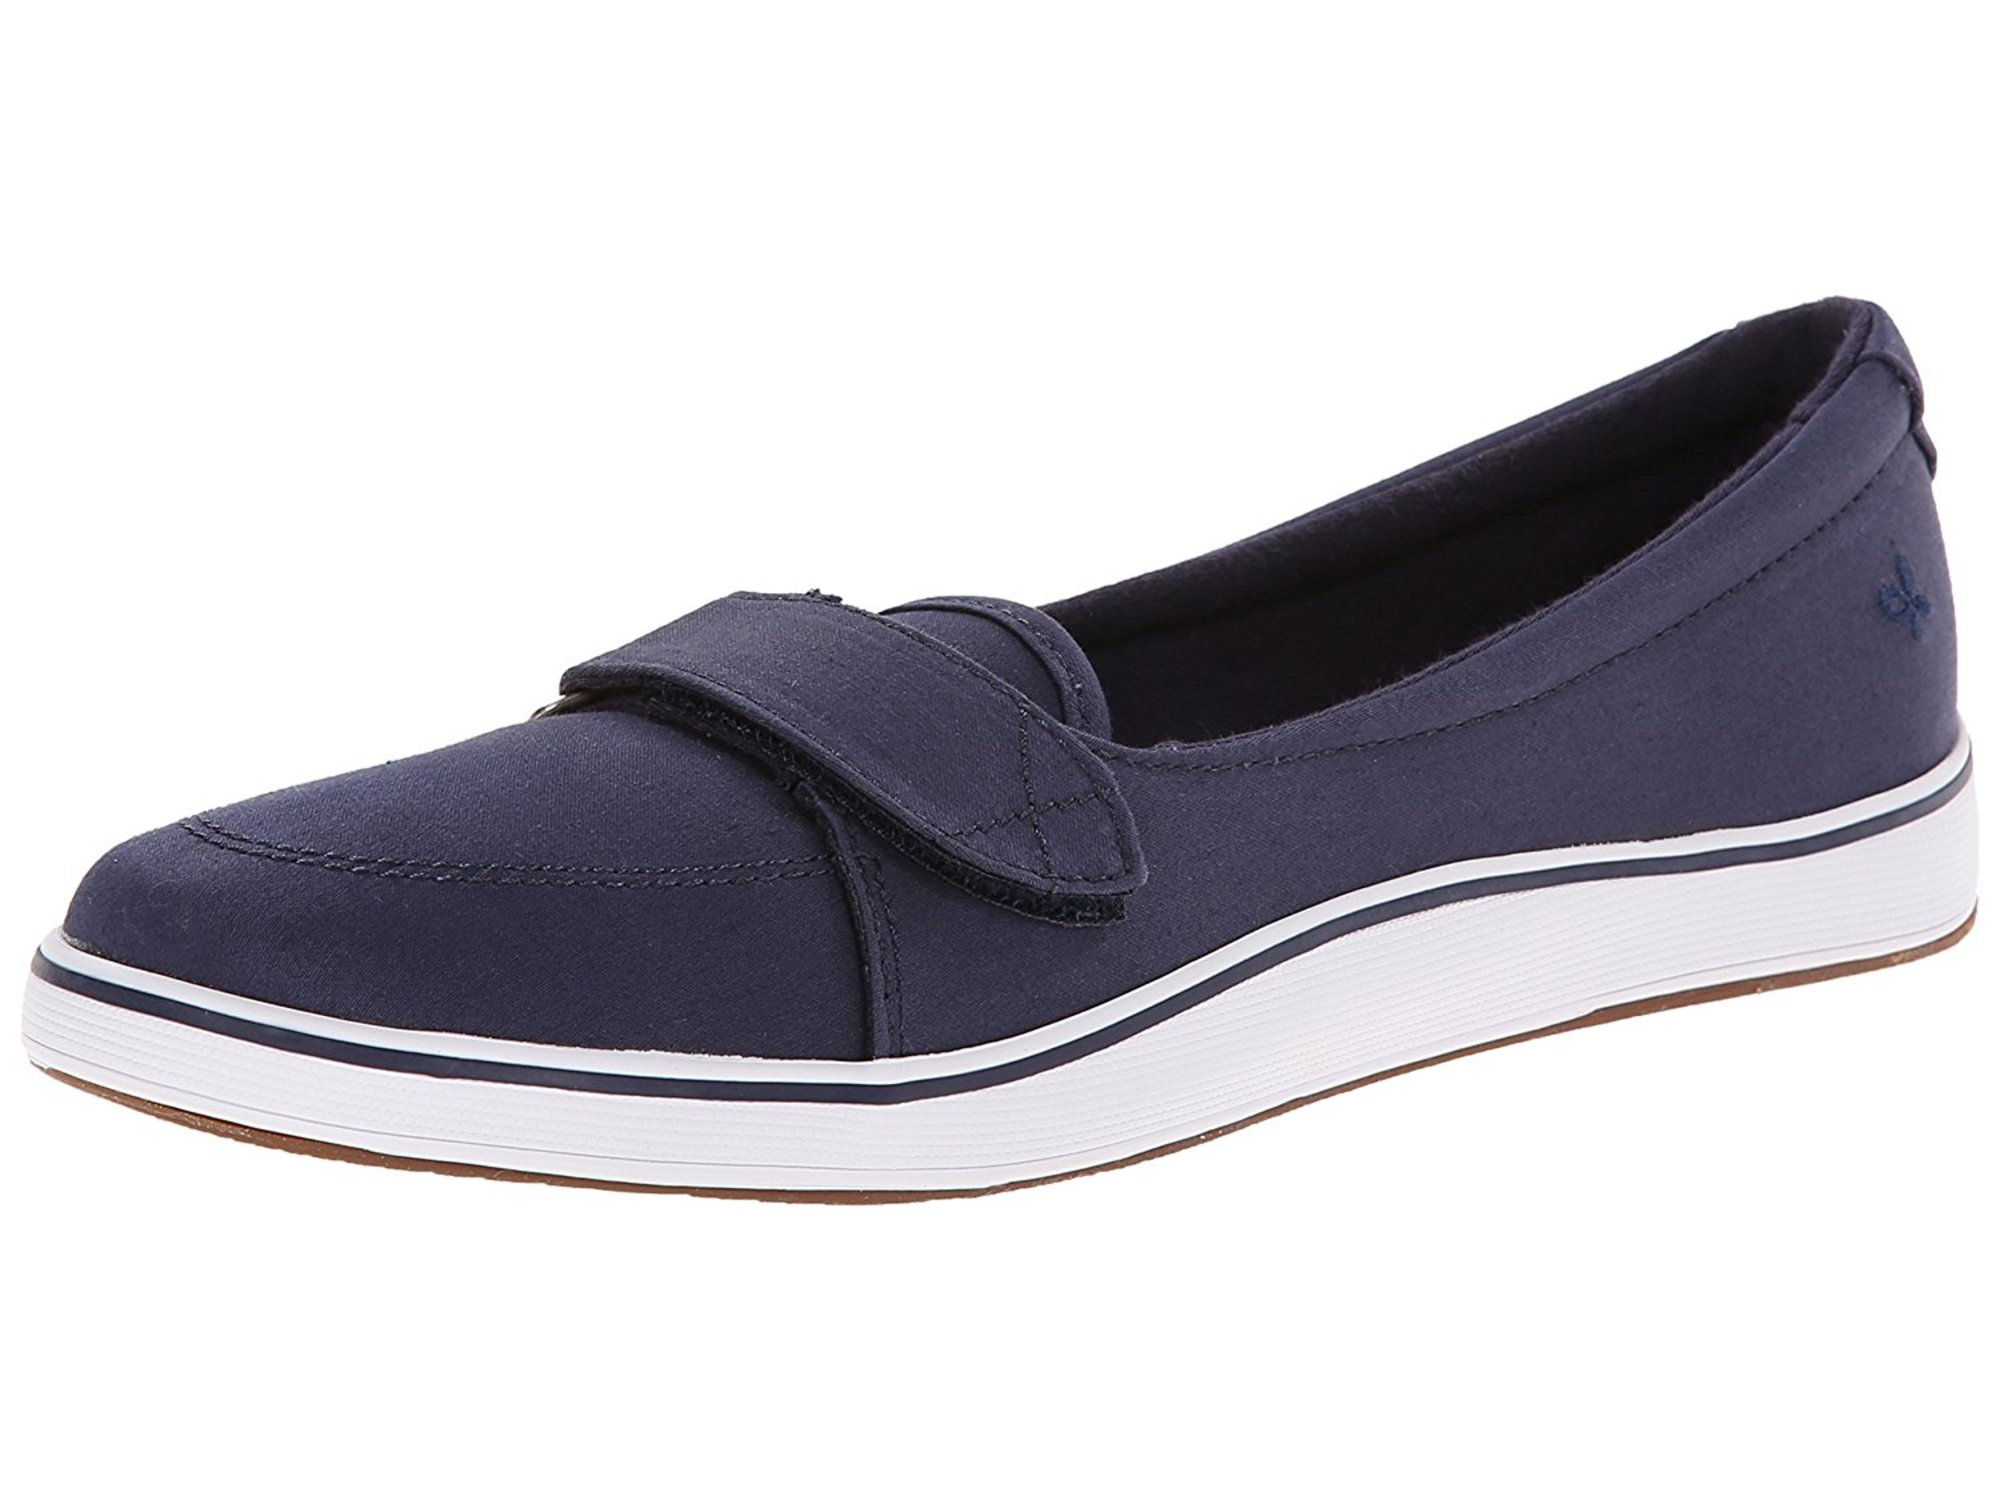 Grasshoppers Womens EF52822 Closed Toe Loafers by Grasshoppers